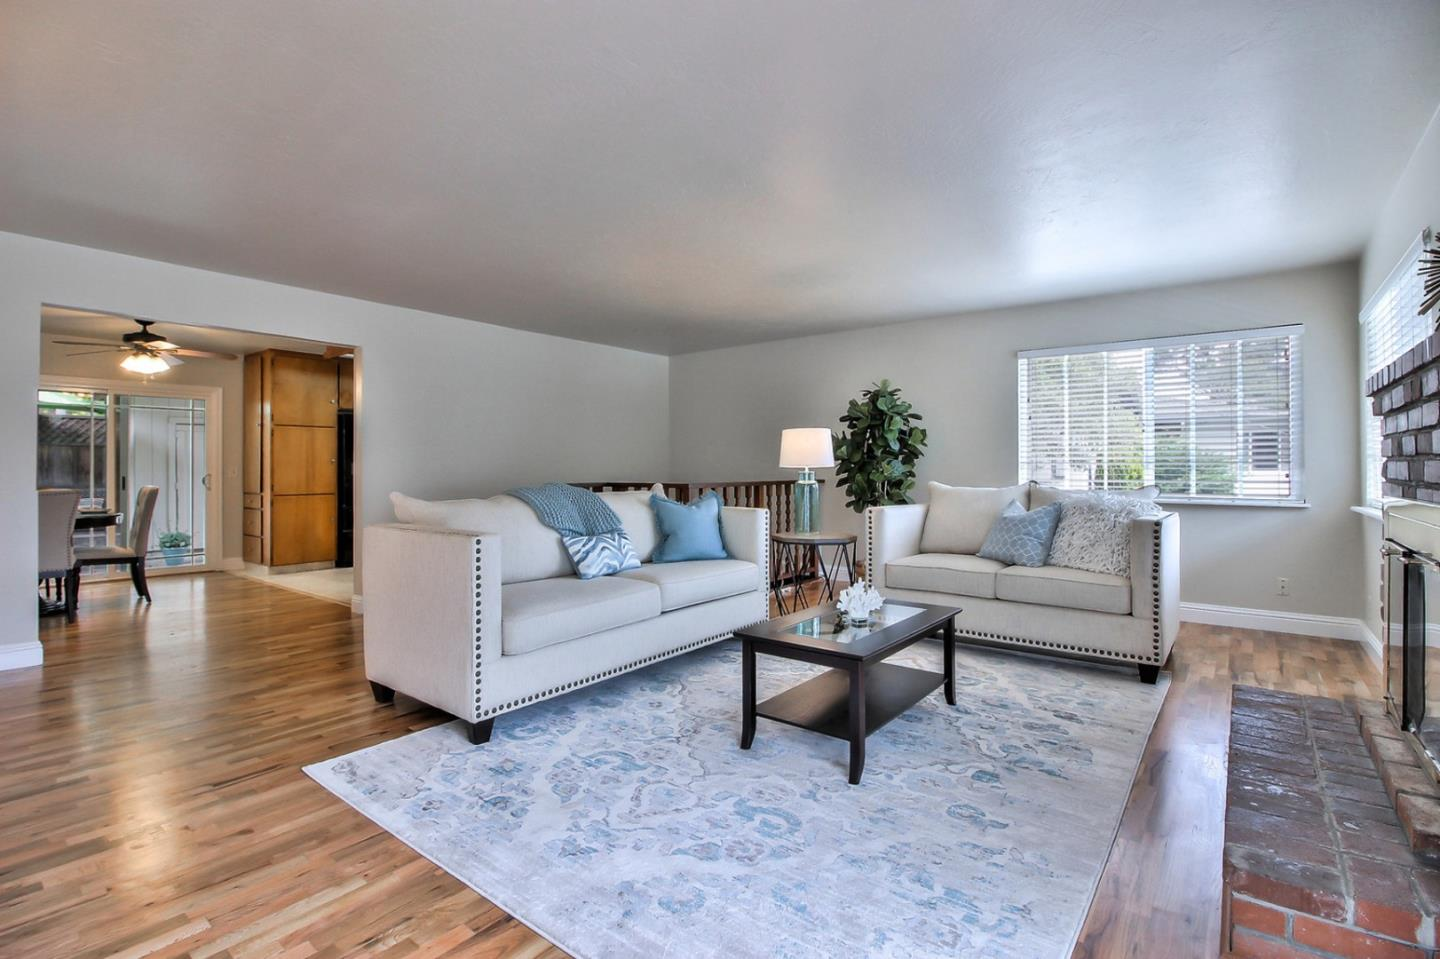 Detail Gallery Image 1 of 1 For 10 Castanada Pl, Monterey, CA, 93940 - 3 Beds | 2 Baths